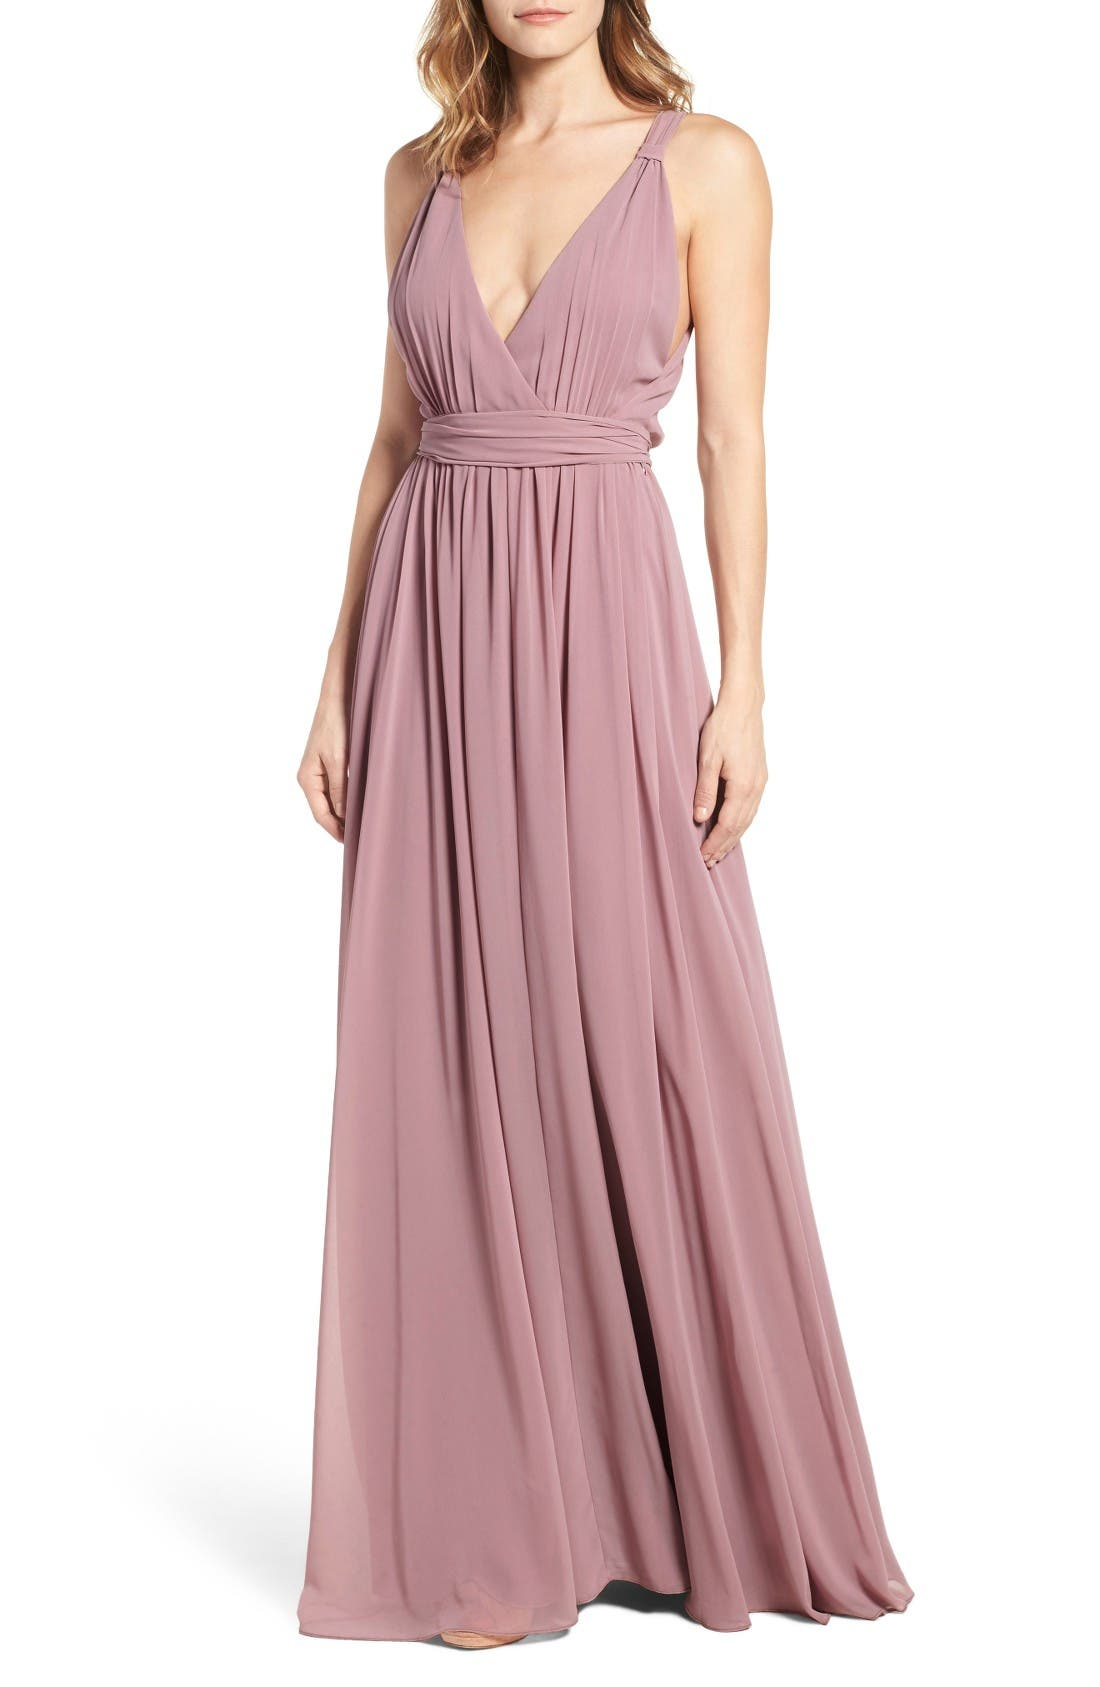 Alternate Image 1 Selected - Ceremony by Joanna August Knot Strap Chiffon Wrap Gown